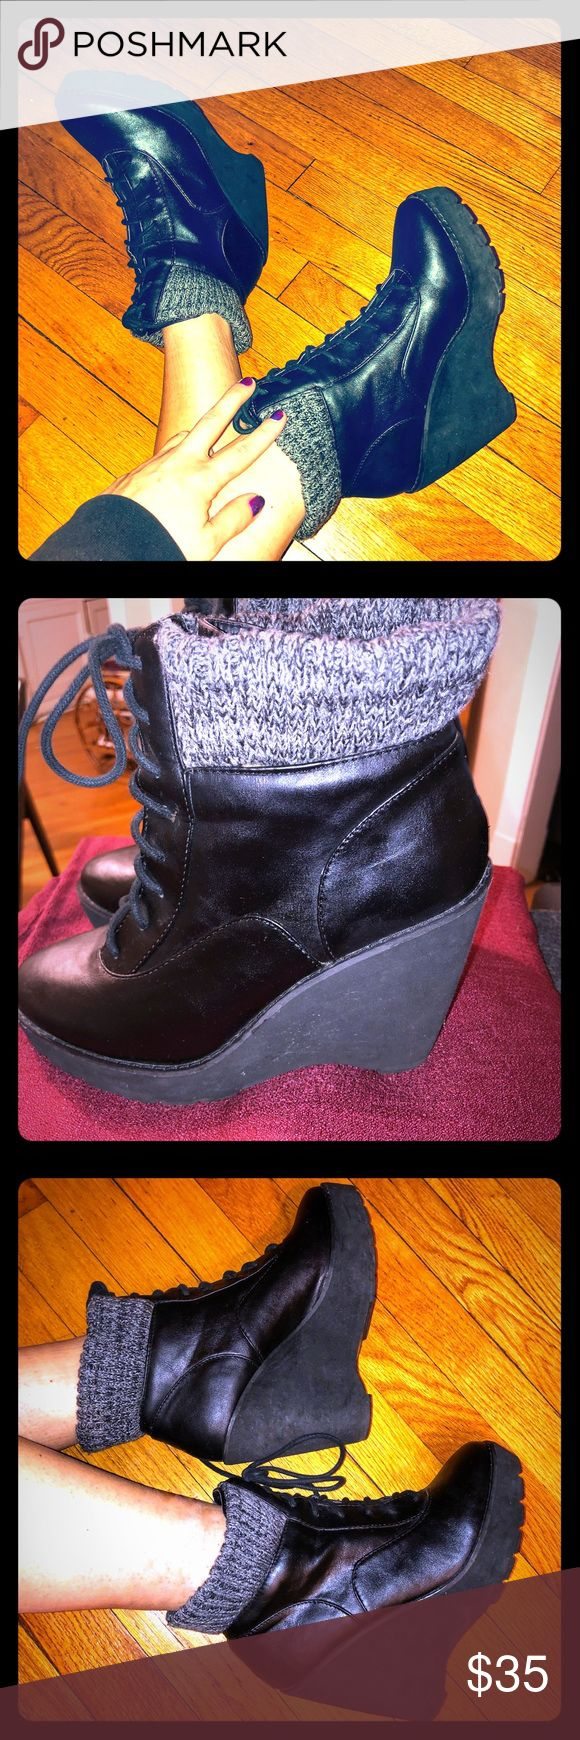 Deena & Ozzy, Black Platform Wedge w/Knit On Top💯 Deena & Ozzy, UO, Black Leather Platform Wedge w/ Gray Knit On Top, Never Worn. In Great Condition. They are SUPER Comfortable, in style, & matches with anything.💯💥🖤 Deena & Ozzy Shoes Ankle Boots & Booties